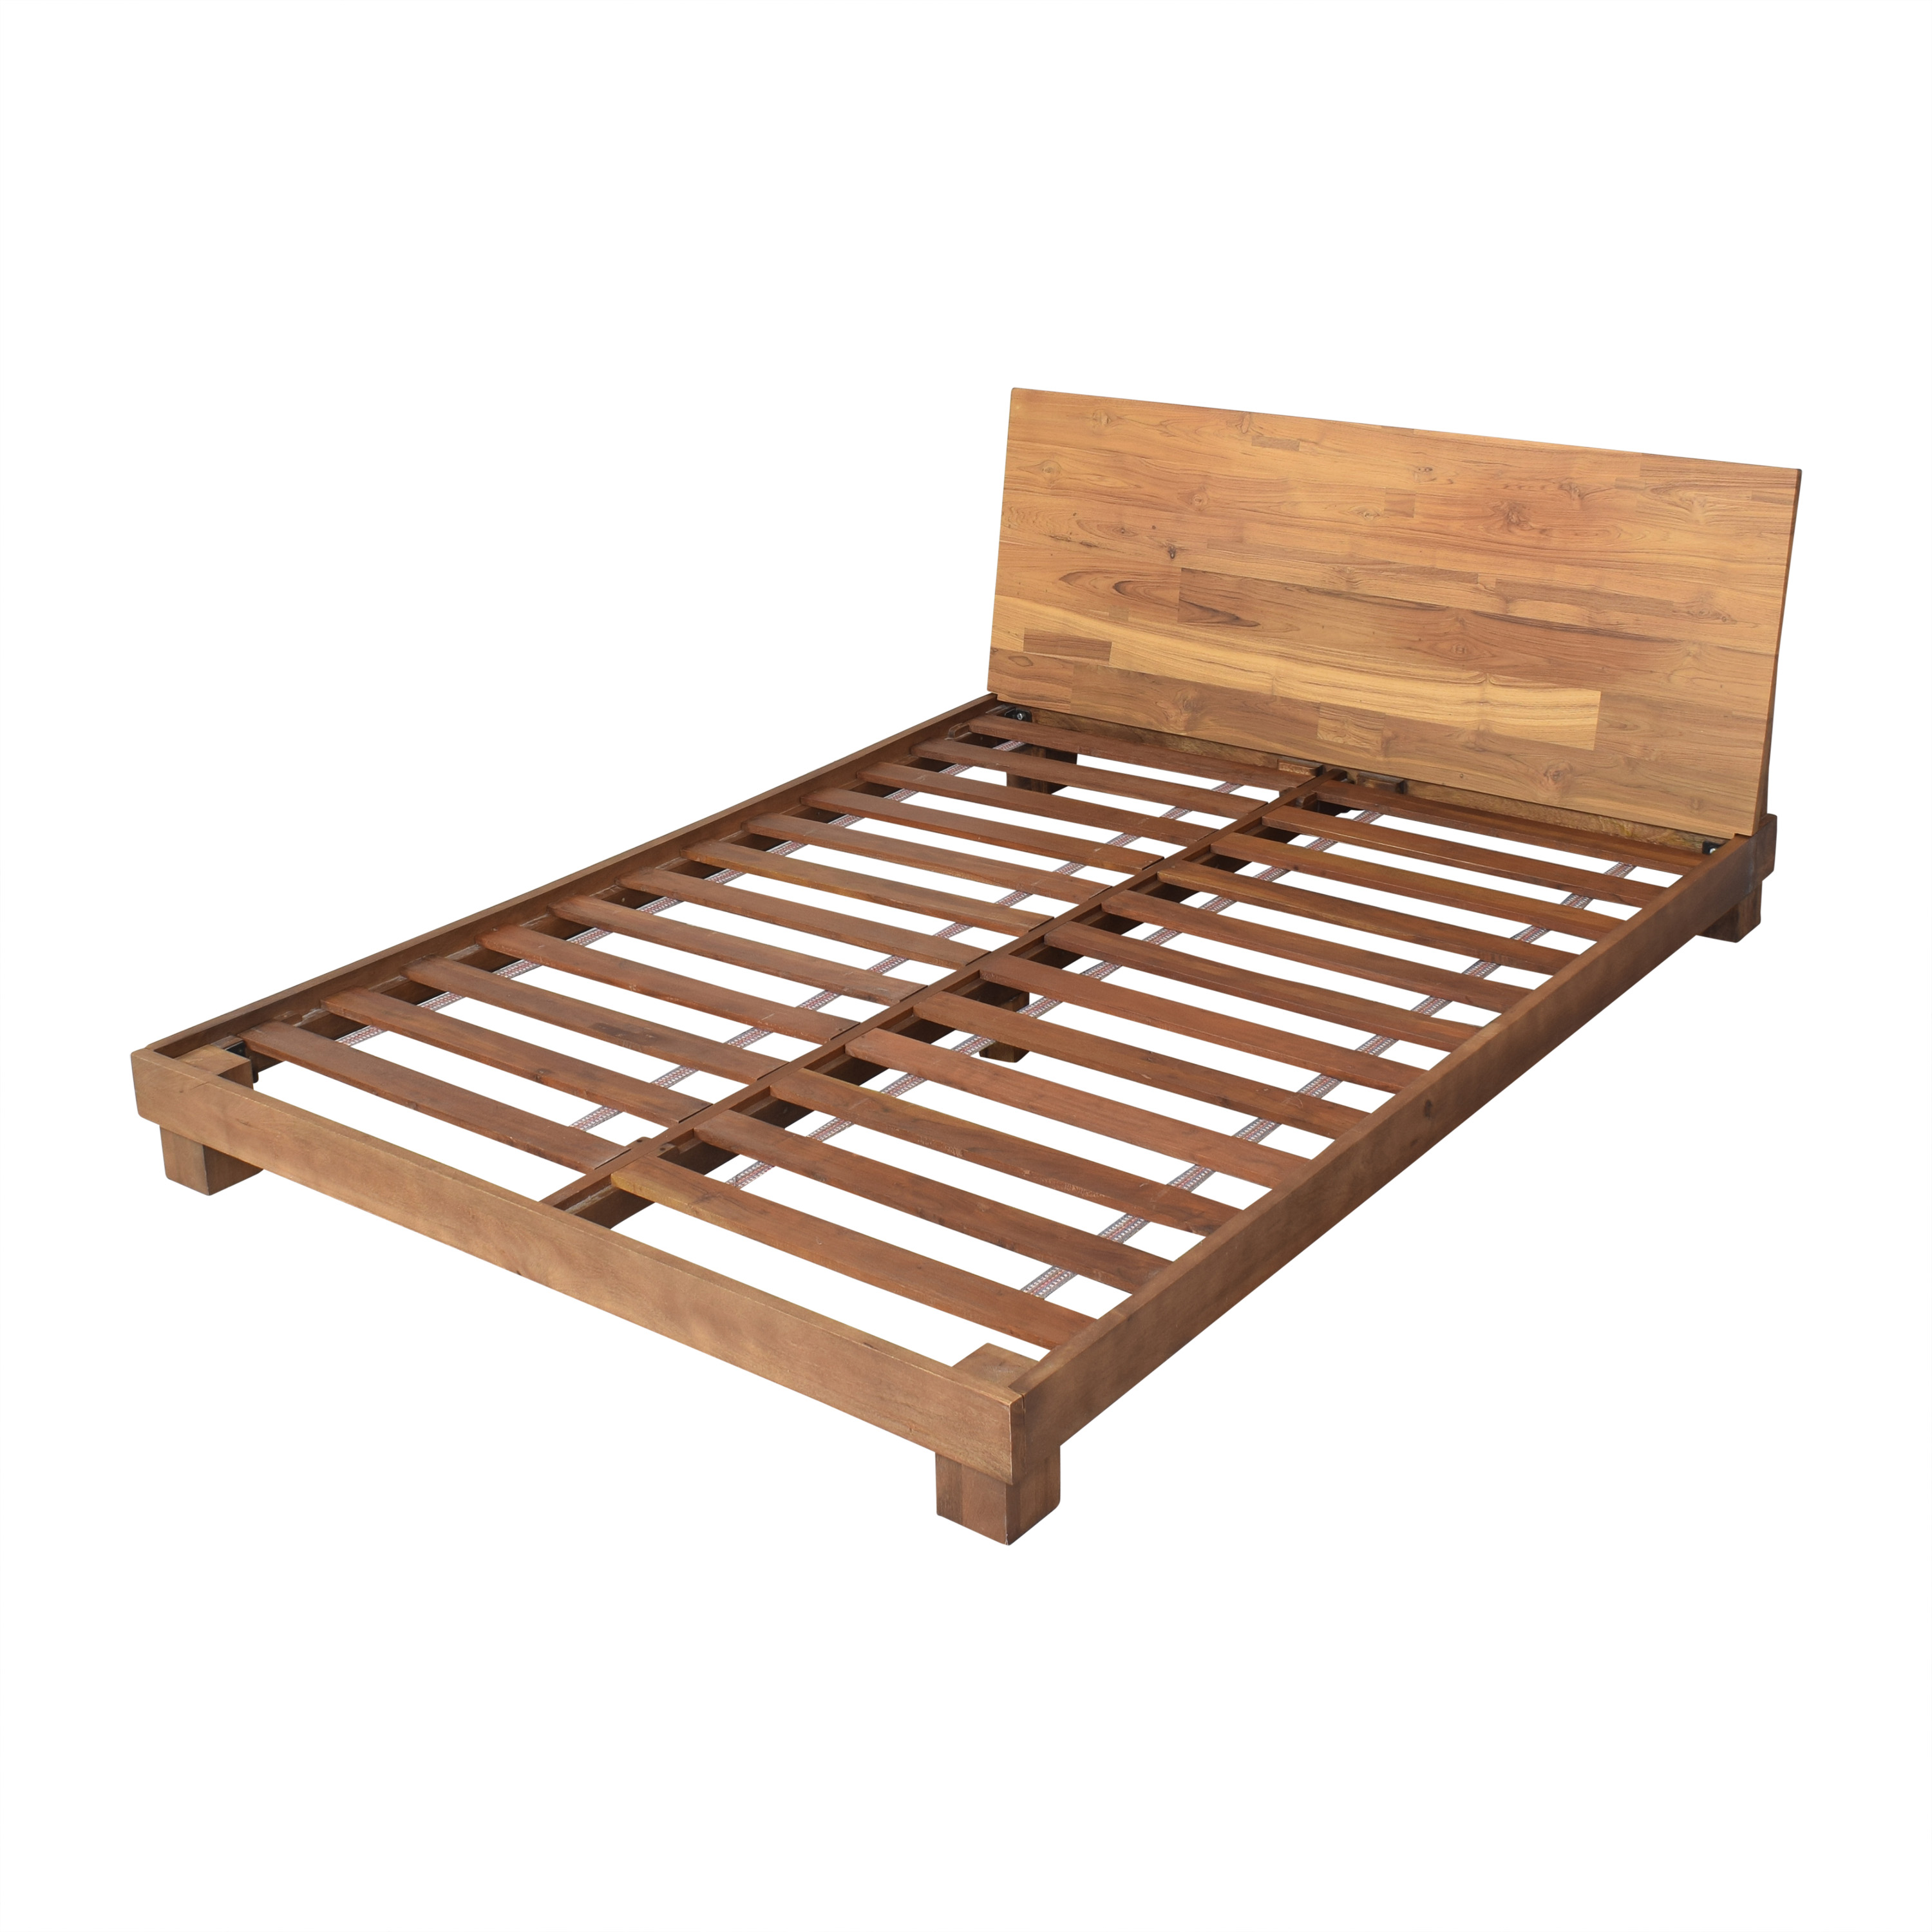 CB2 CB2 Dondra Queen Bed price